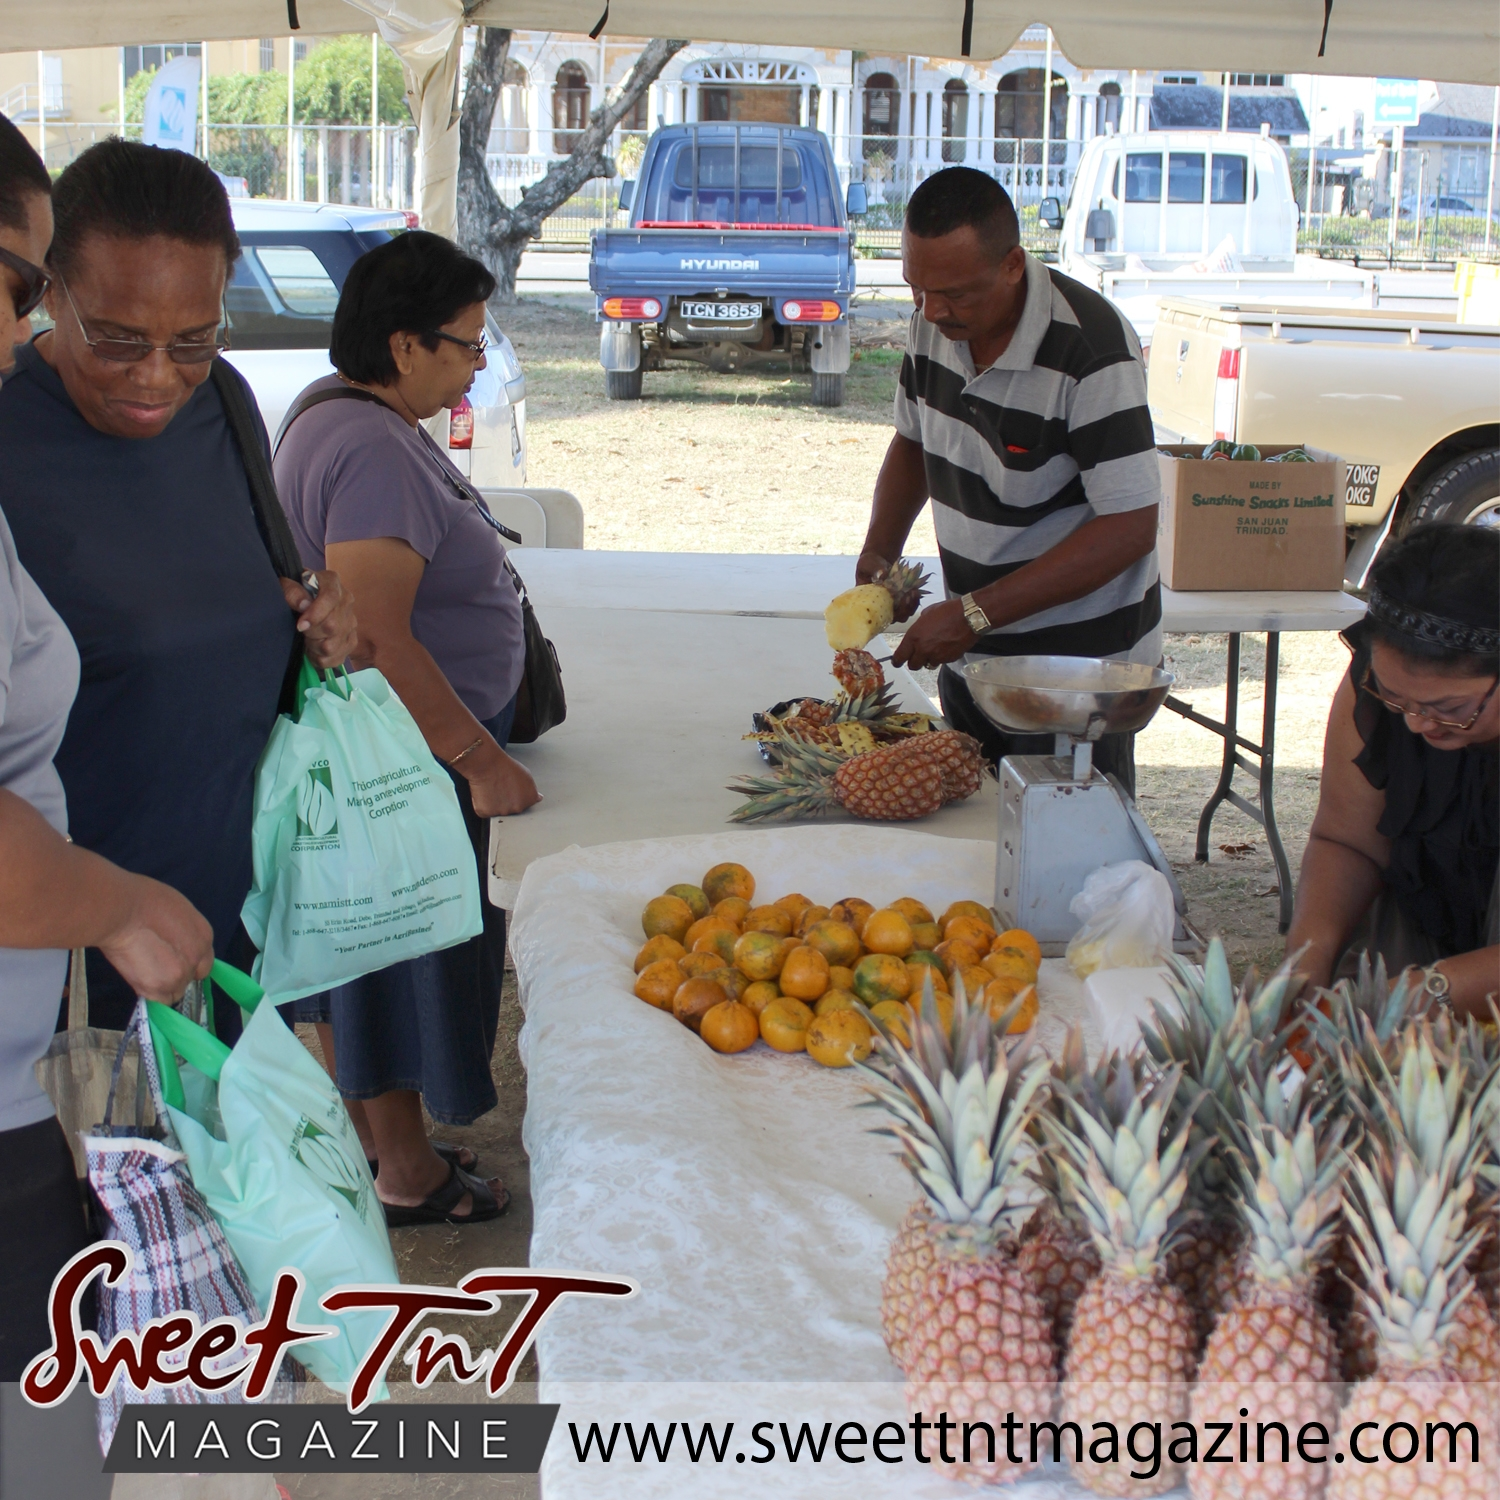 Man slices pineapples for customers next to heap of portugal, tangerine and oranges on table while customers holding green bags wait at Farmers' Market at Queen's Park Savannah, Port of Spain in parking lot in Sweet T&T, Sweet TnT, Trinidad and Tobago, Trini, vacation, travel